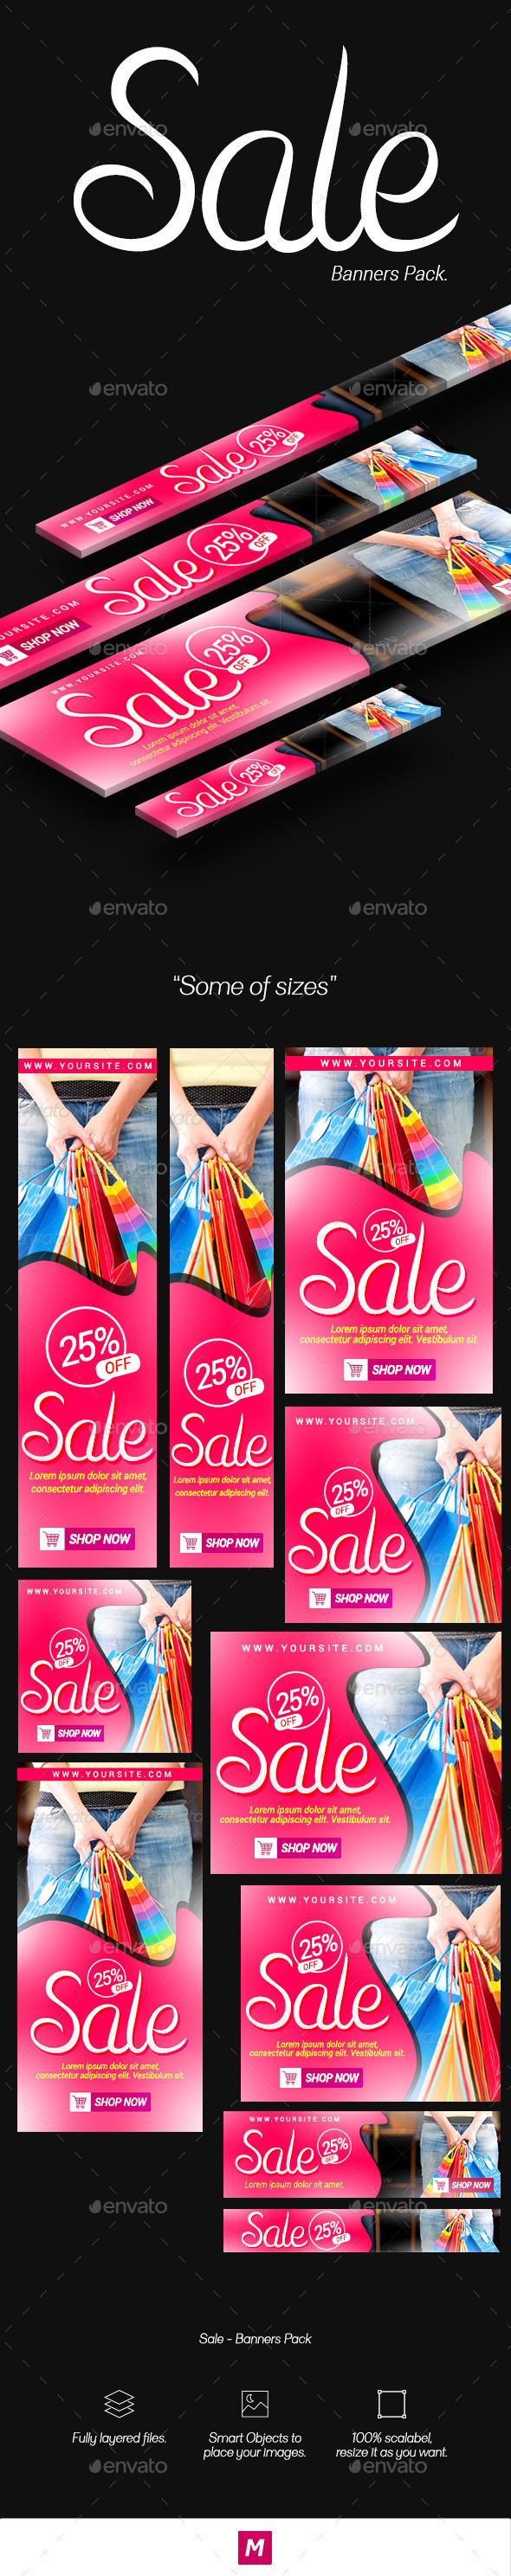 Sale Banners Pack